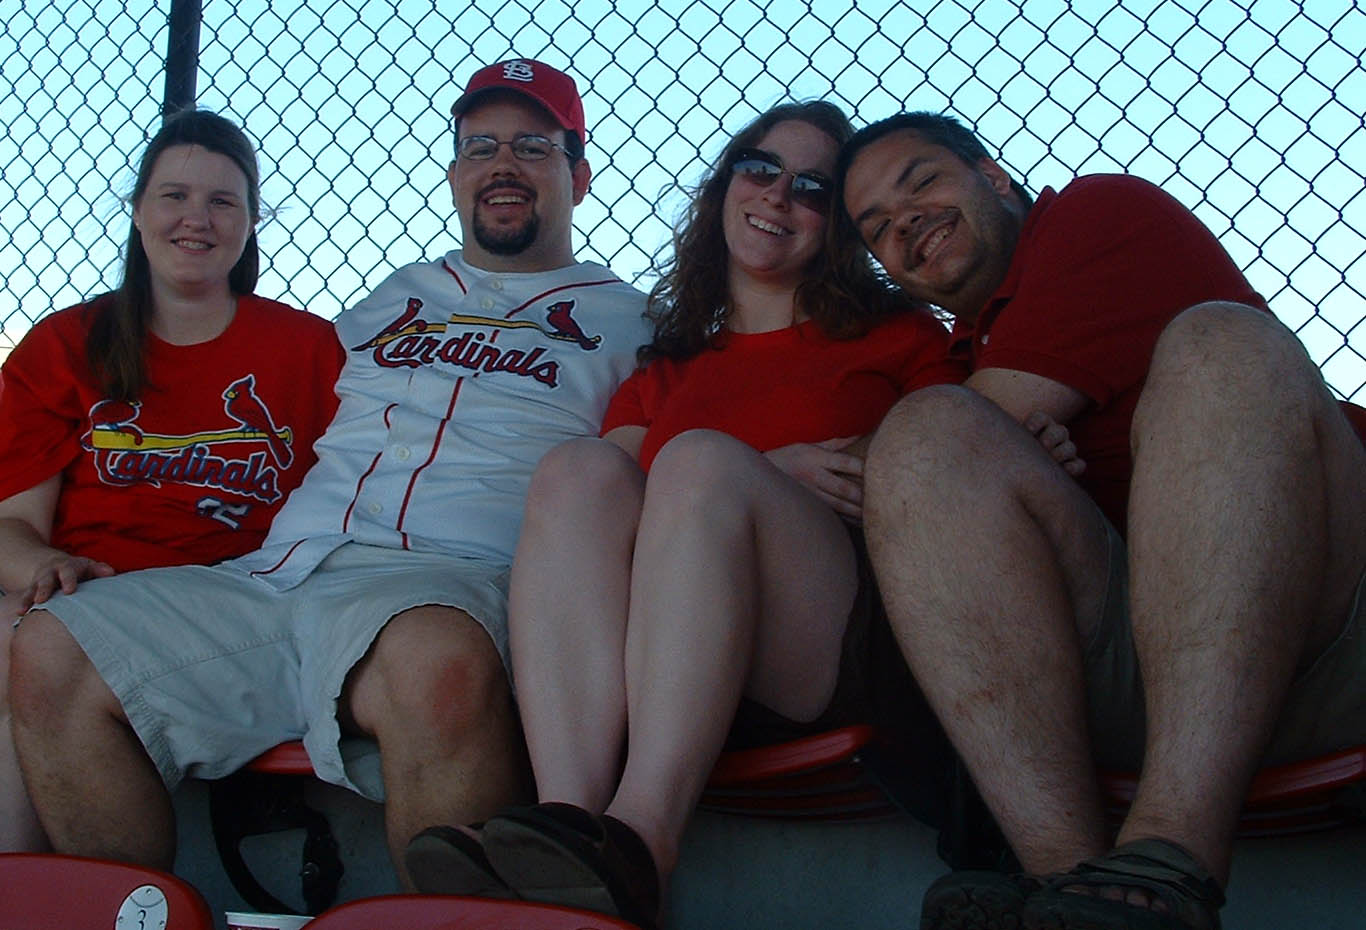 Oddwalk and wives at a 2006 Cards game